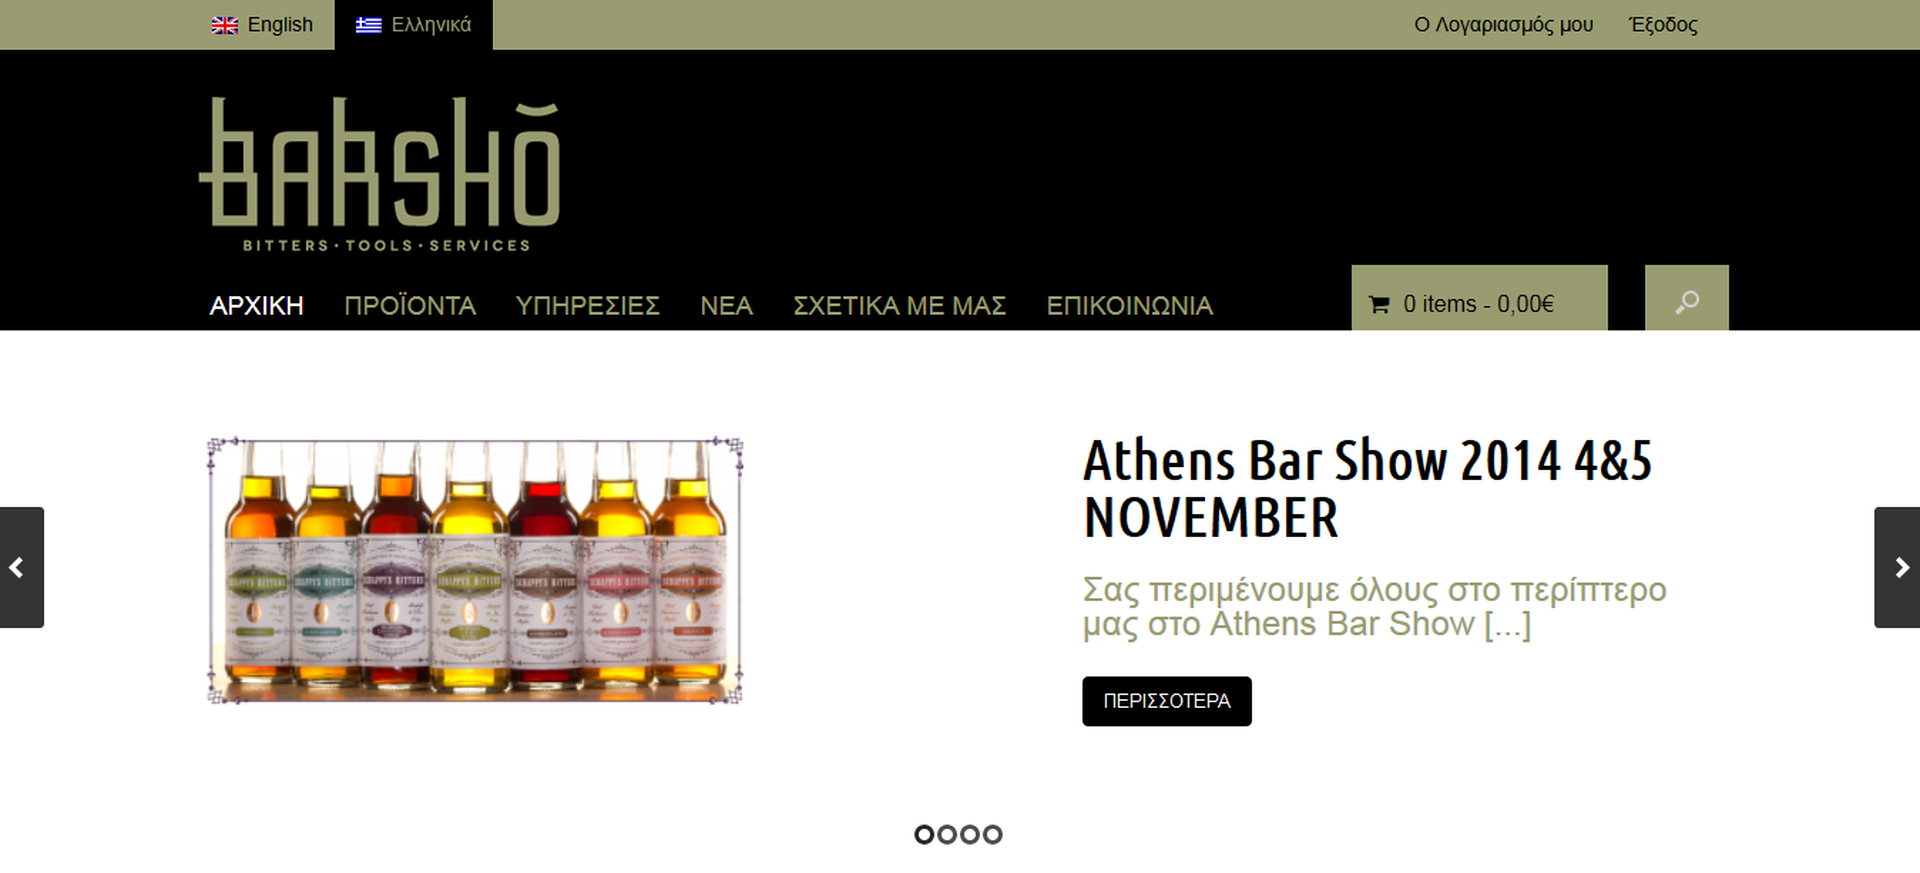 barsho, bitters, tools, bar services, thessaloniki, greece